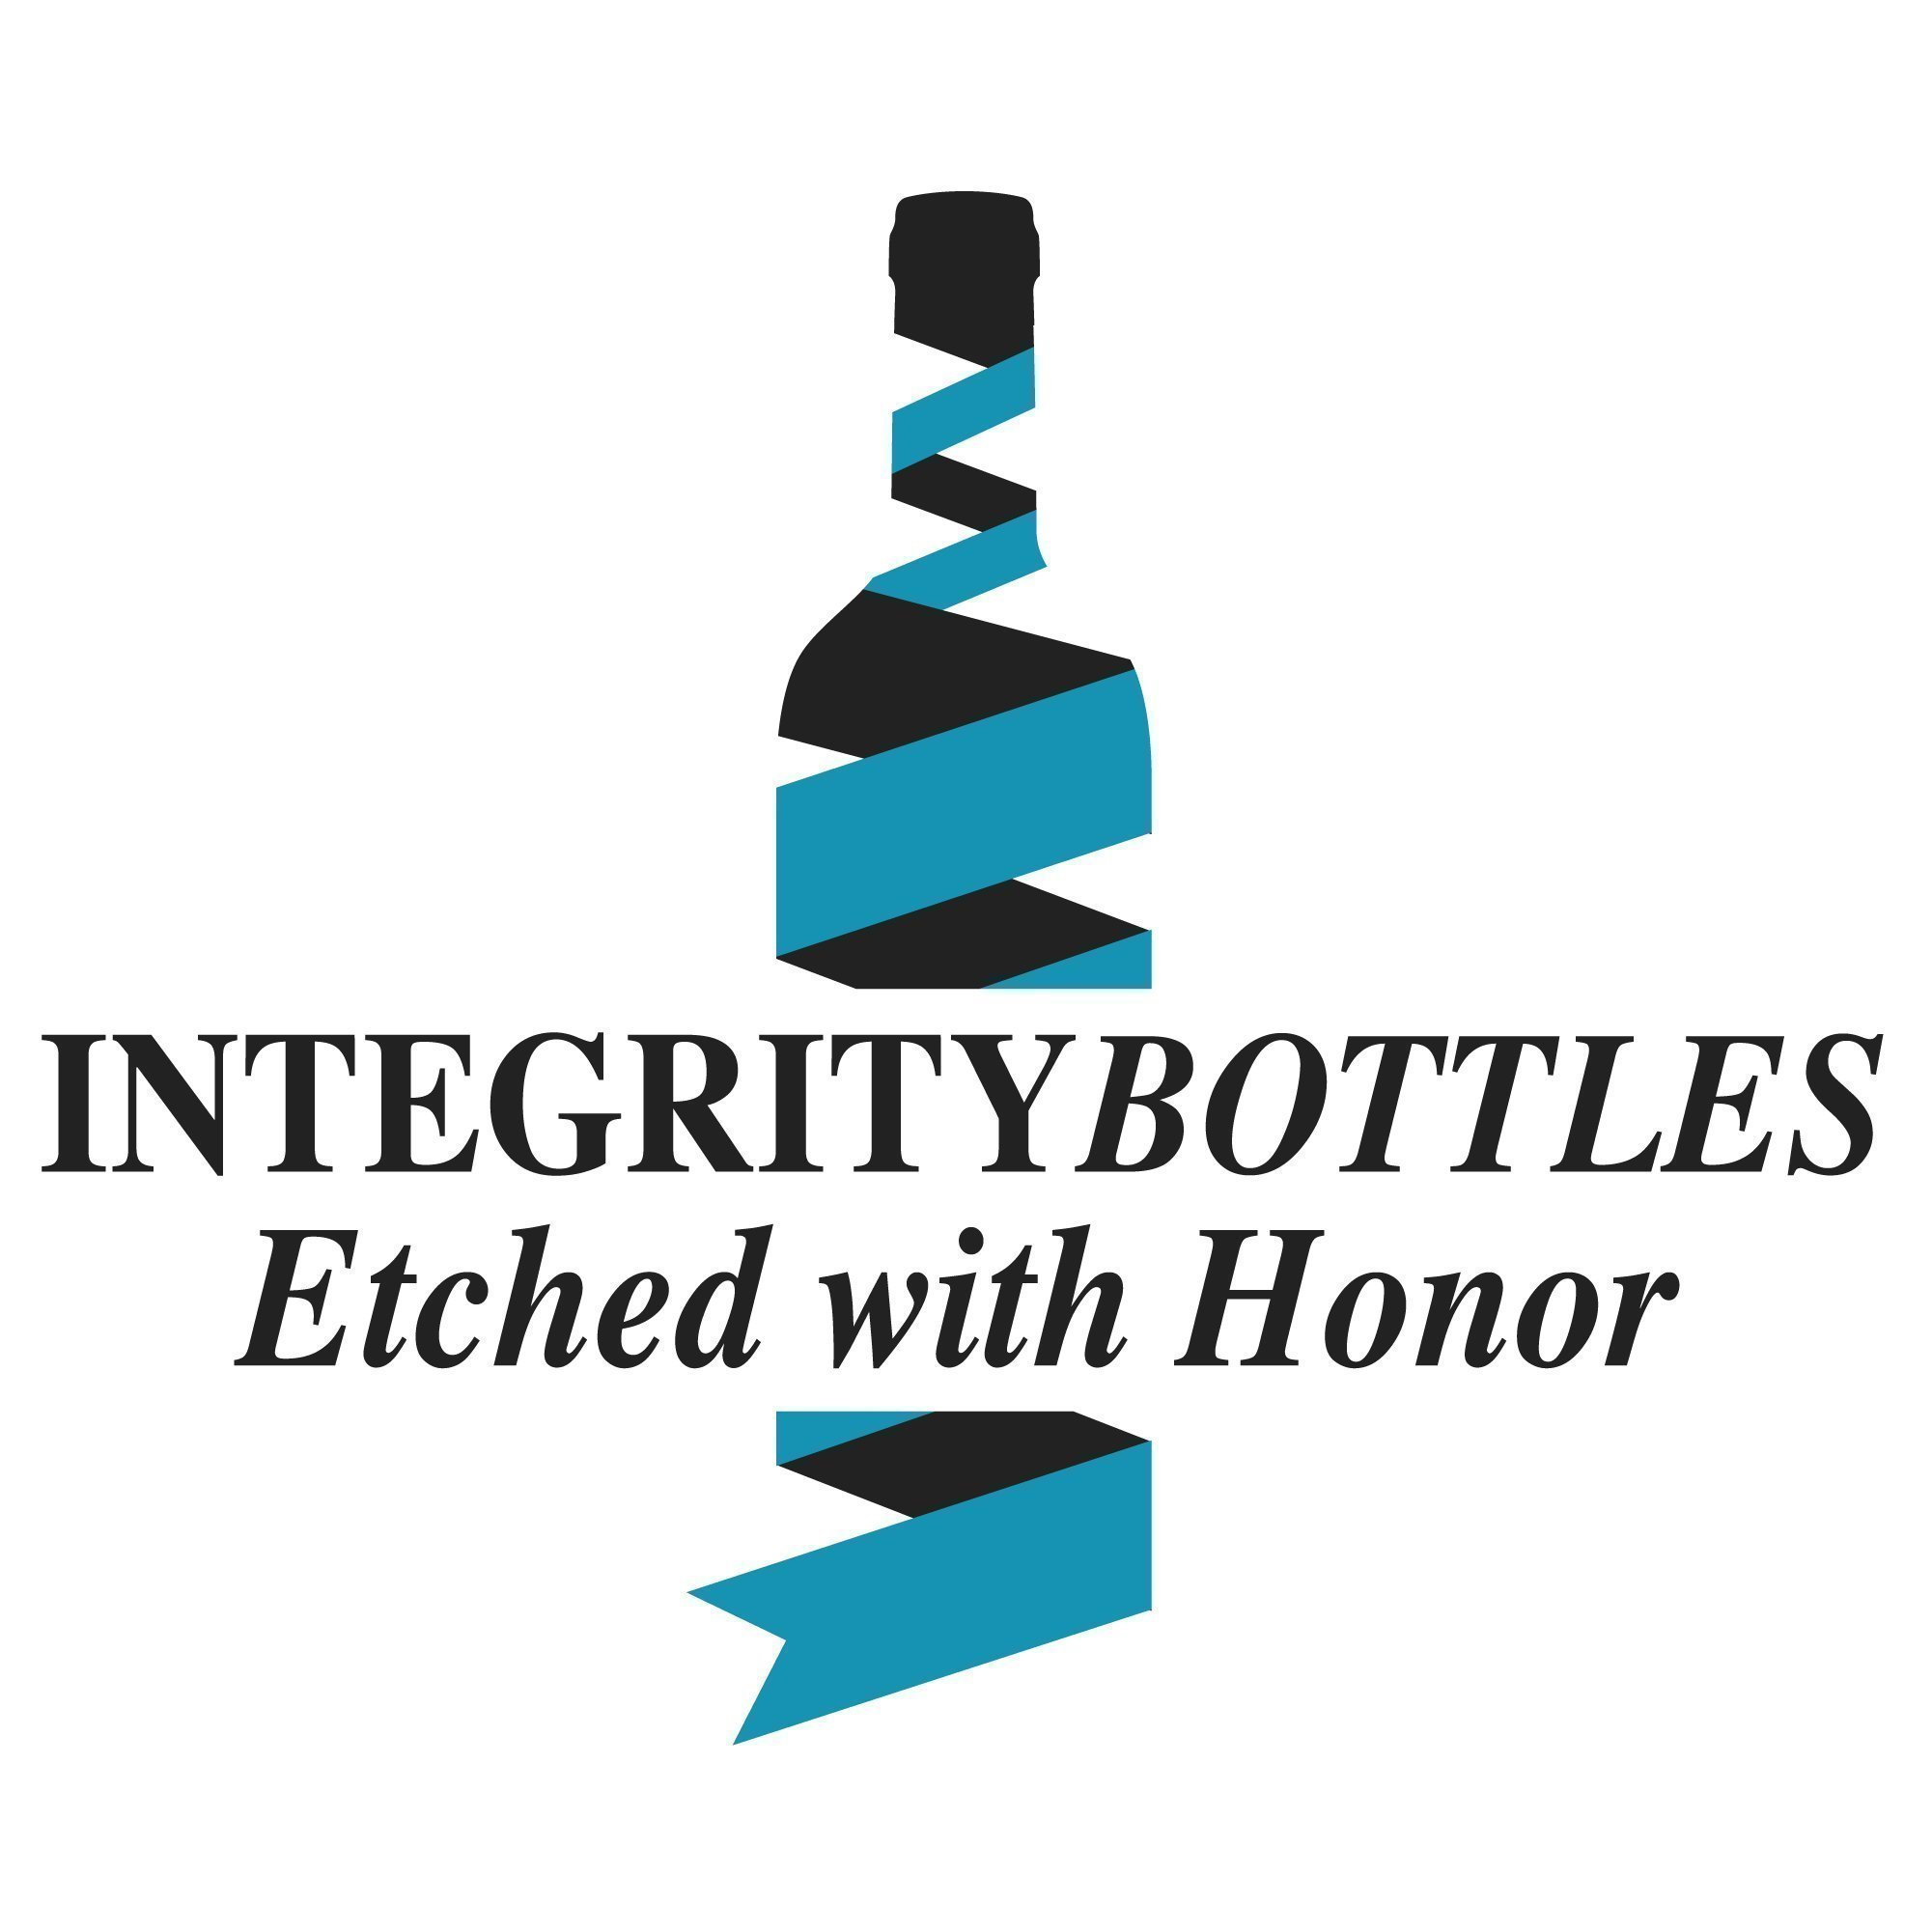 Integrity Bottles Sea Turtle Stemless Wine Glass, Crackle Teal, Handblown, Tribal Design, Hand Etched Gifts, Sand Carved by Integrity Bottles (Image #2)